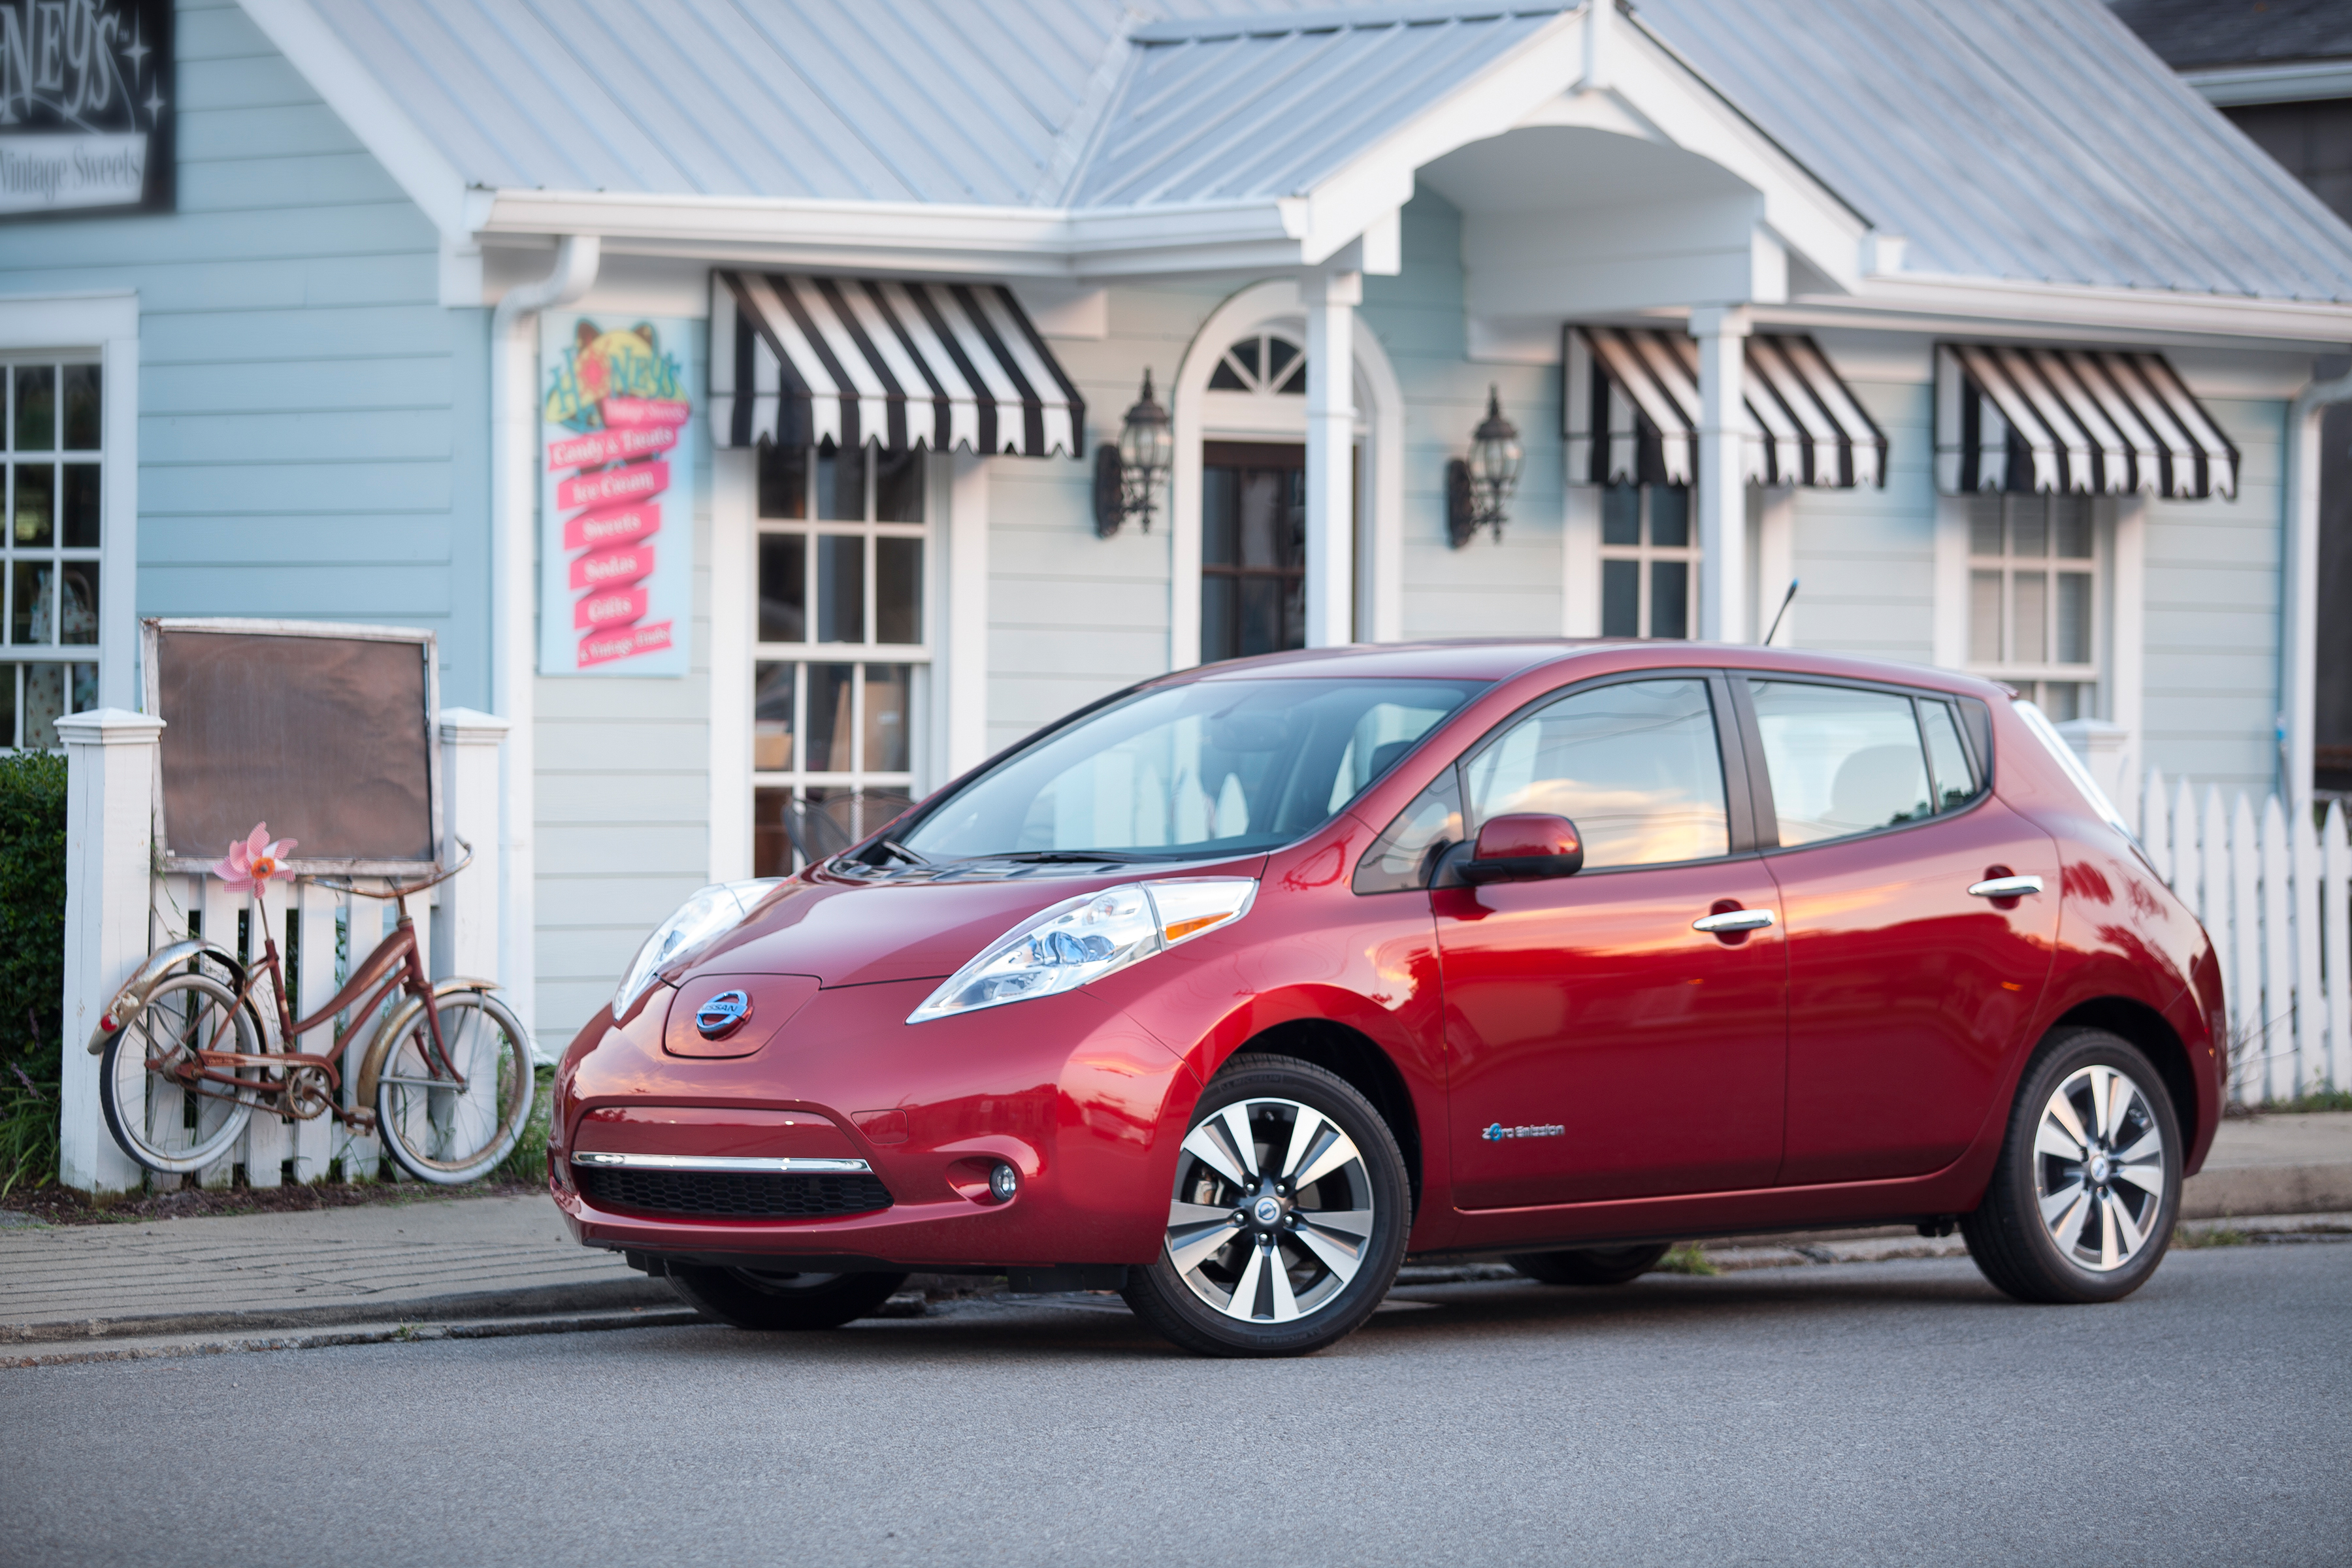 to entice ers to purchase a leaf nissan launched a free charging promotion this past